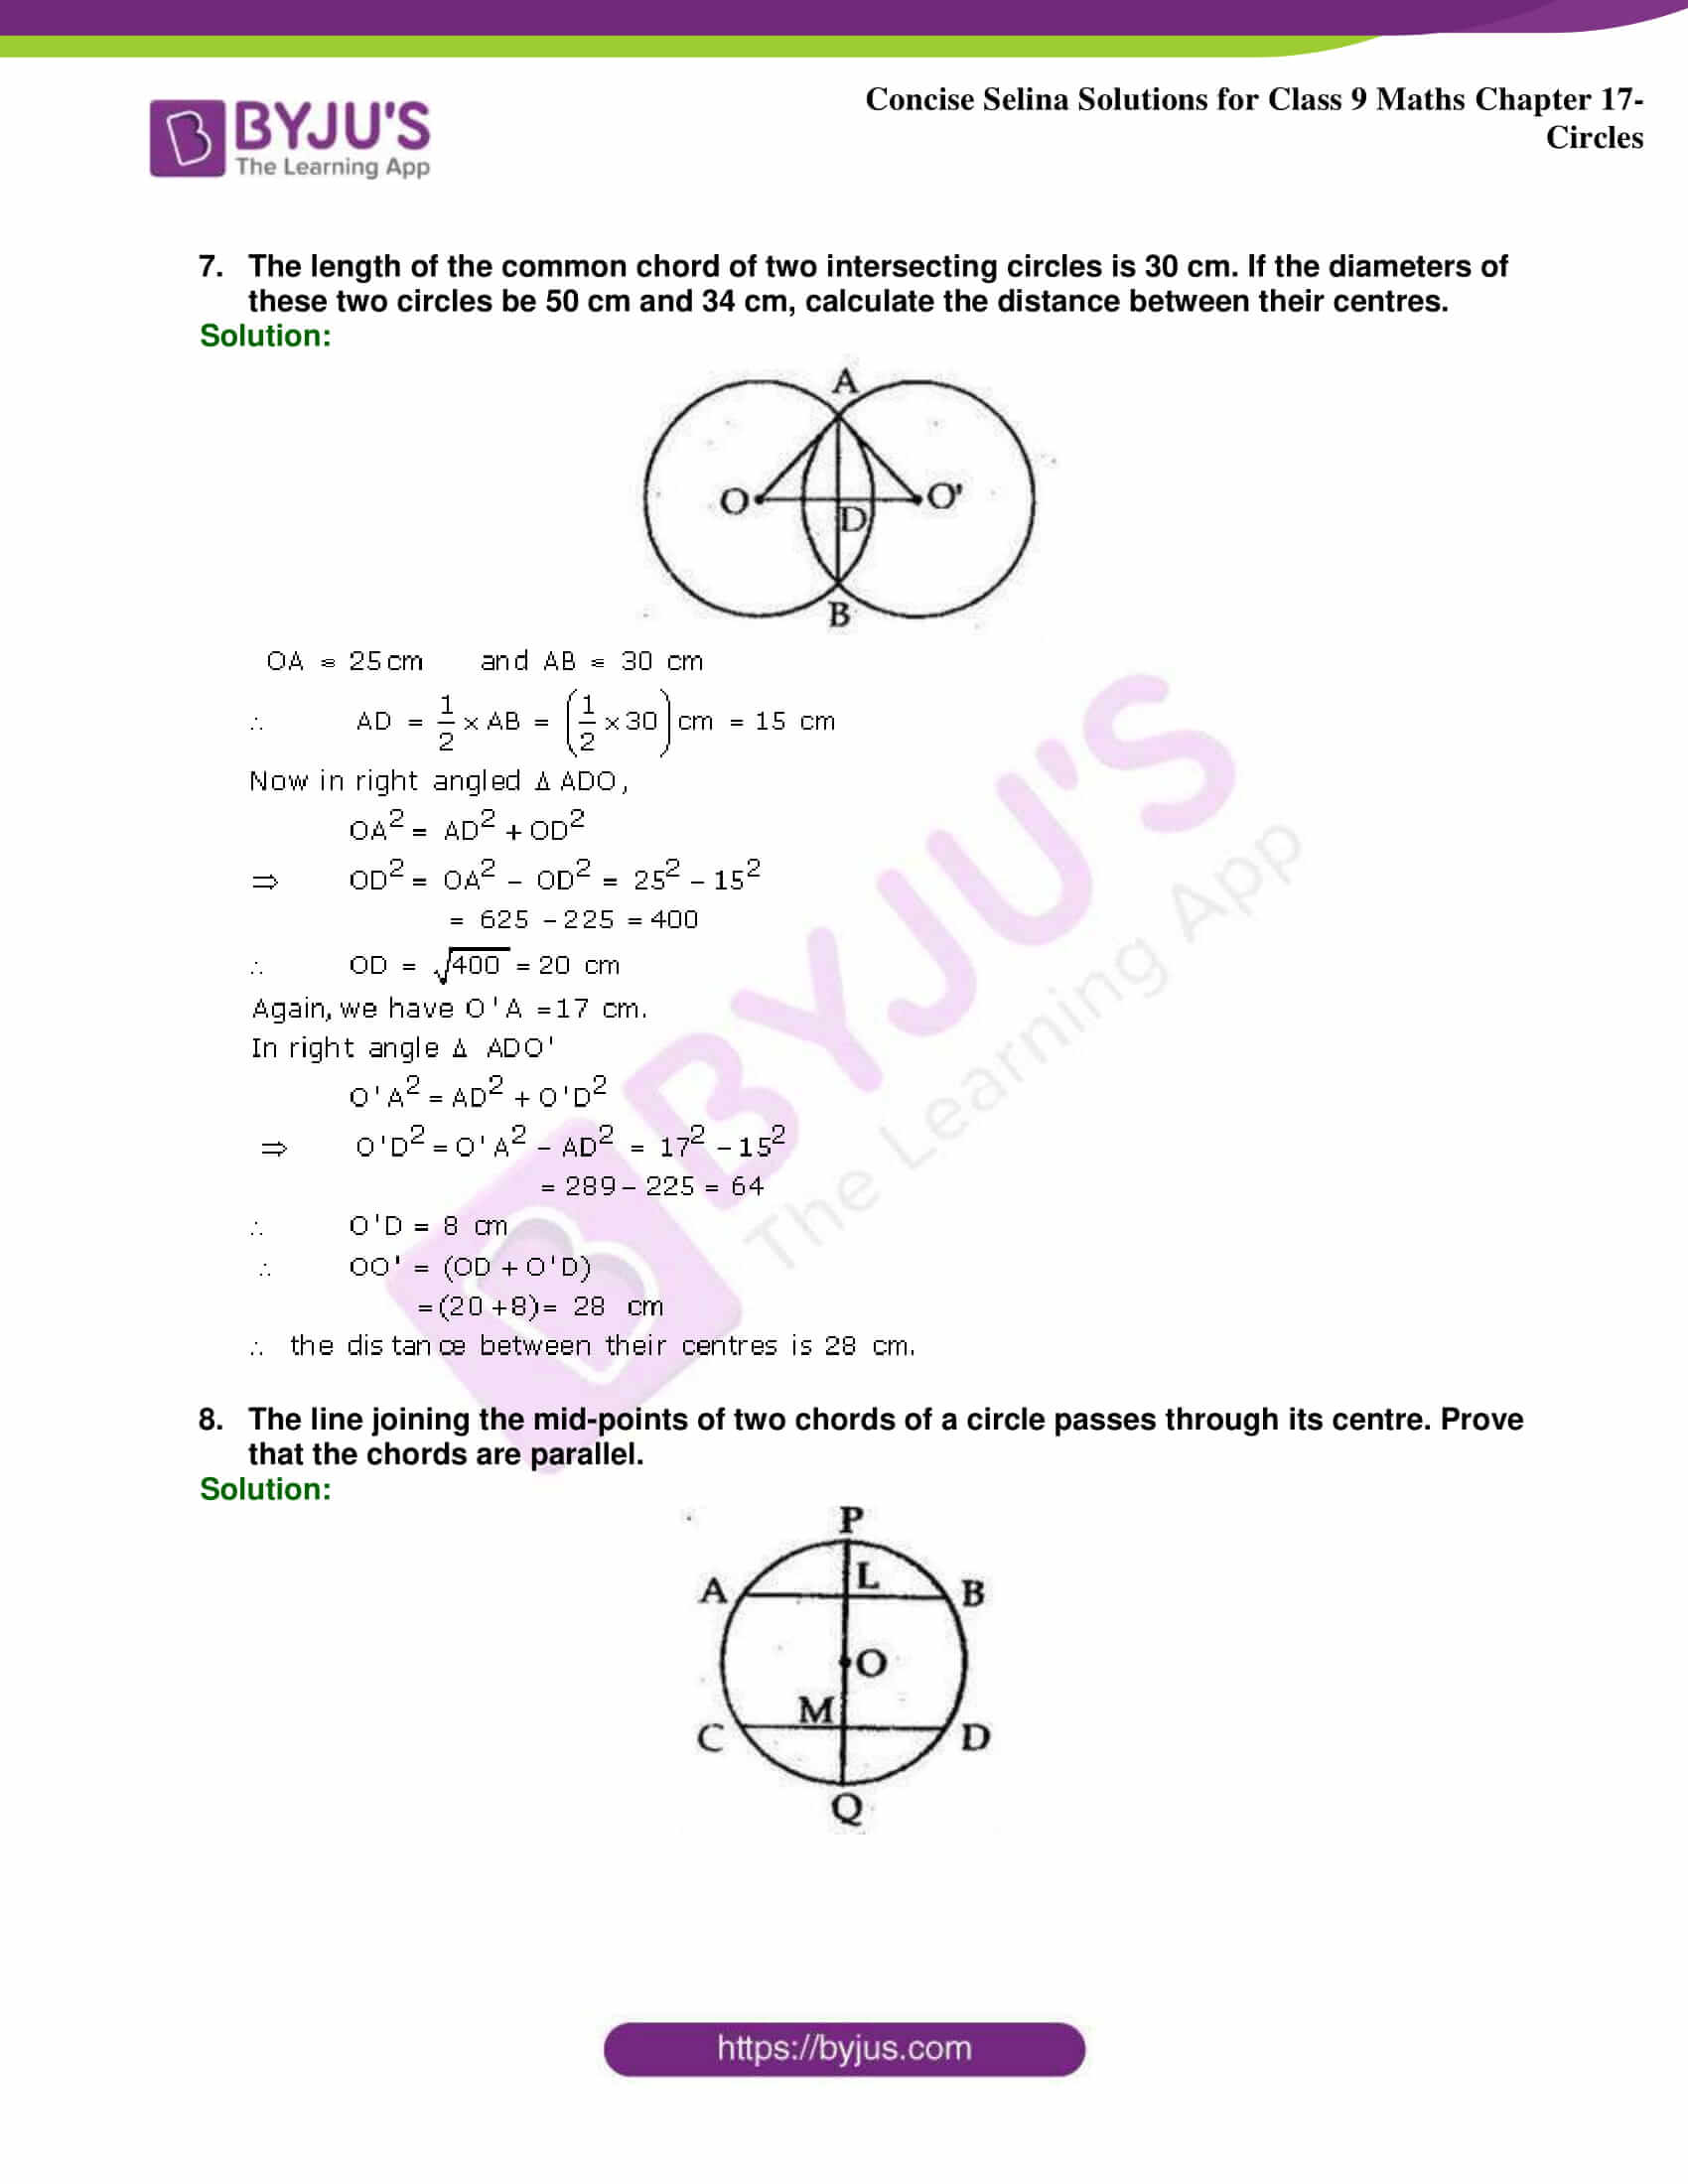 Concise Selina Solutions Class 9 Maths Chapter 17 Circles part 15